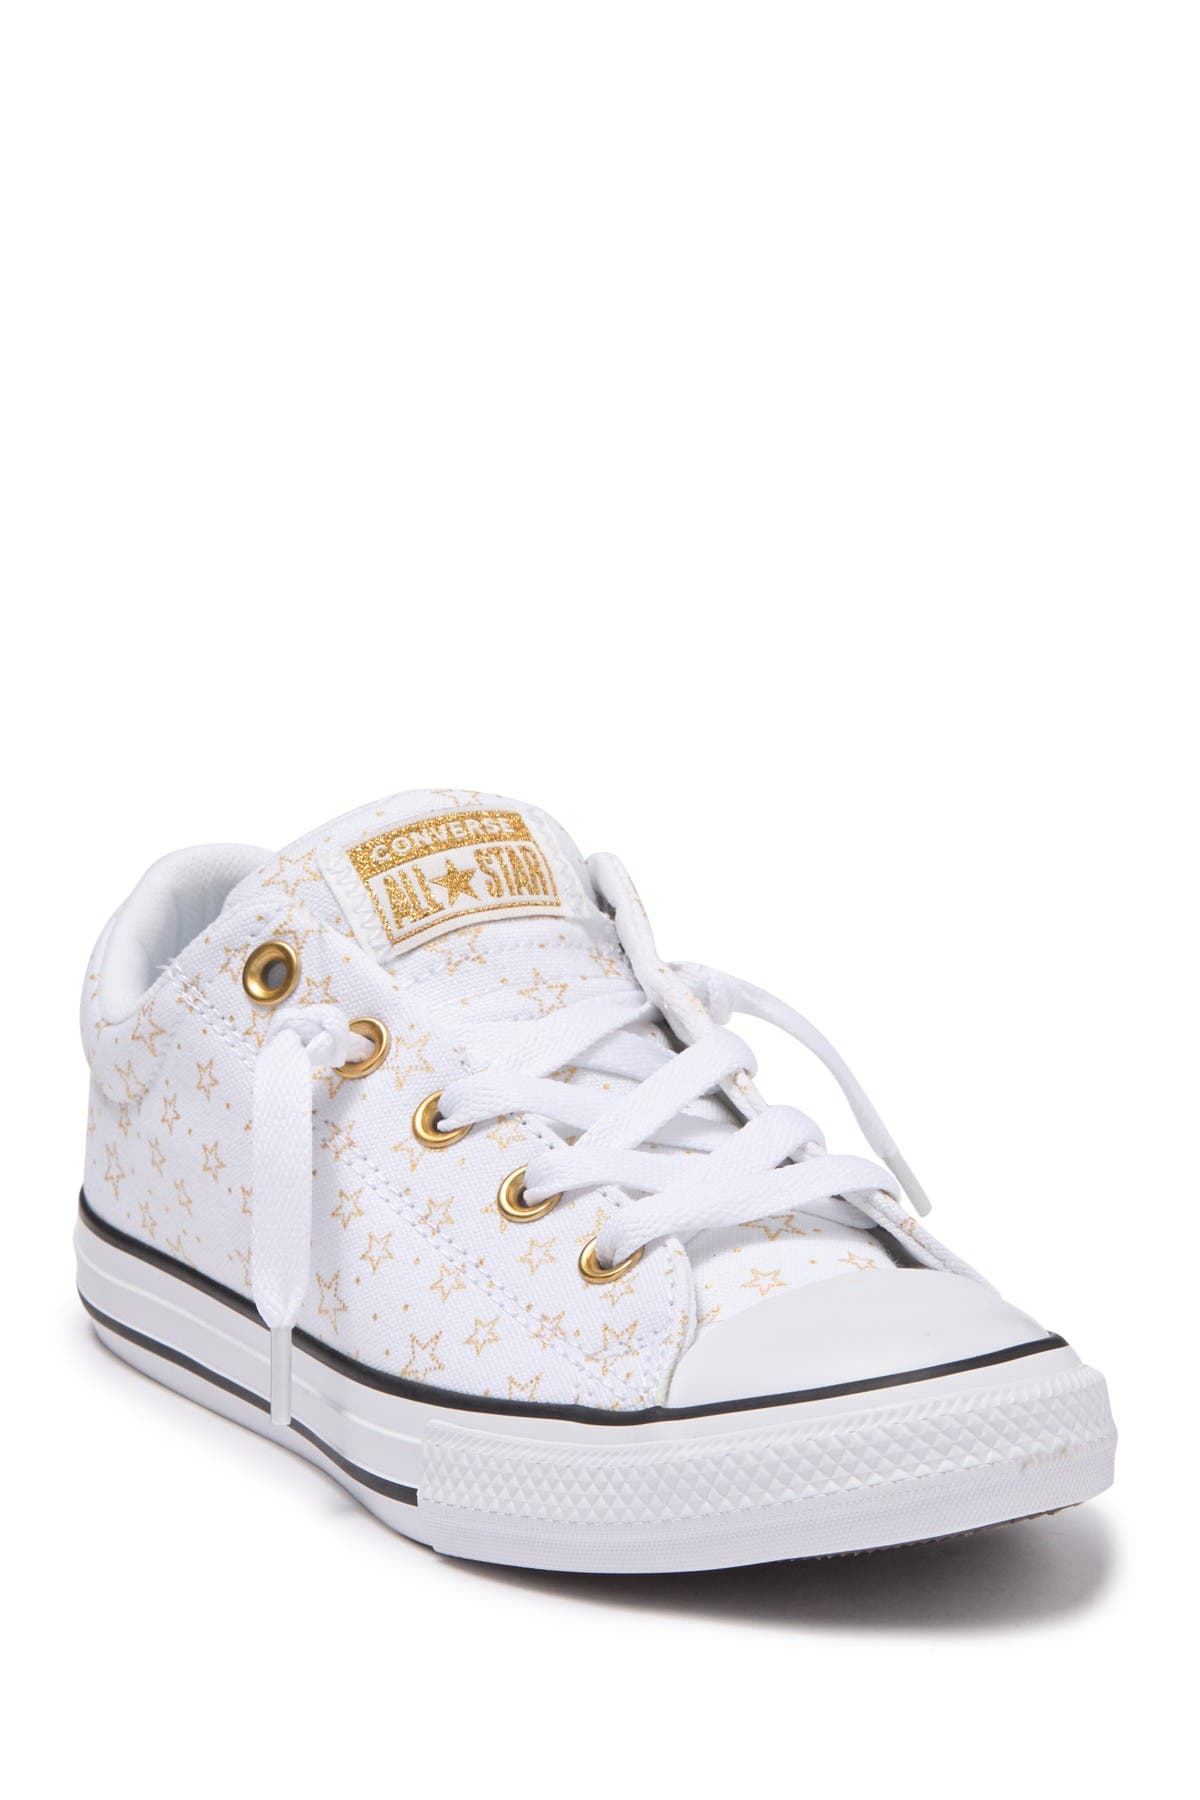 Image of Converse Chuck Taylor All Star Street Star Print Sneaker